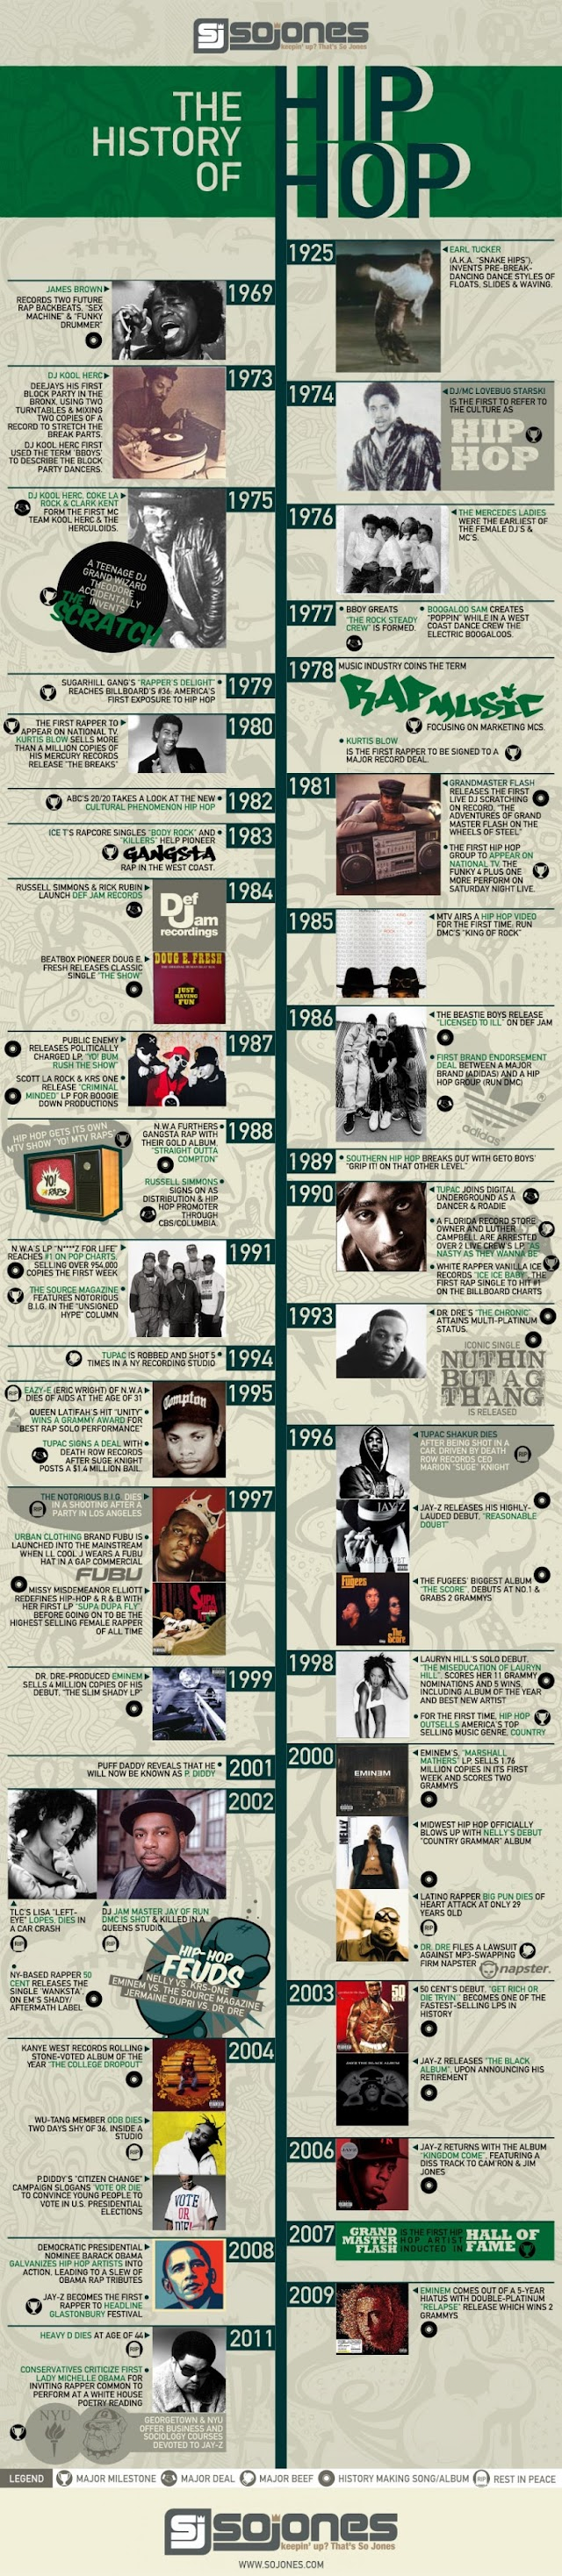 Historical Timeline of Hip Hop dating back from 1925 to 2011